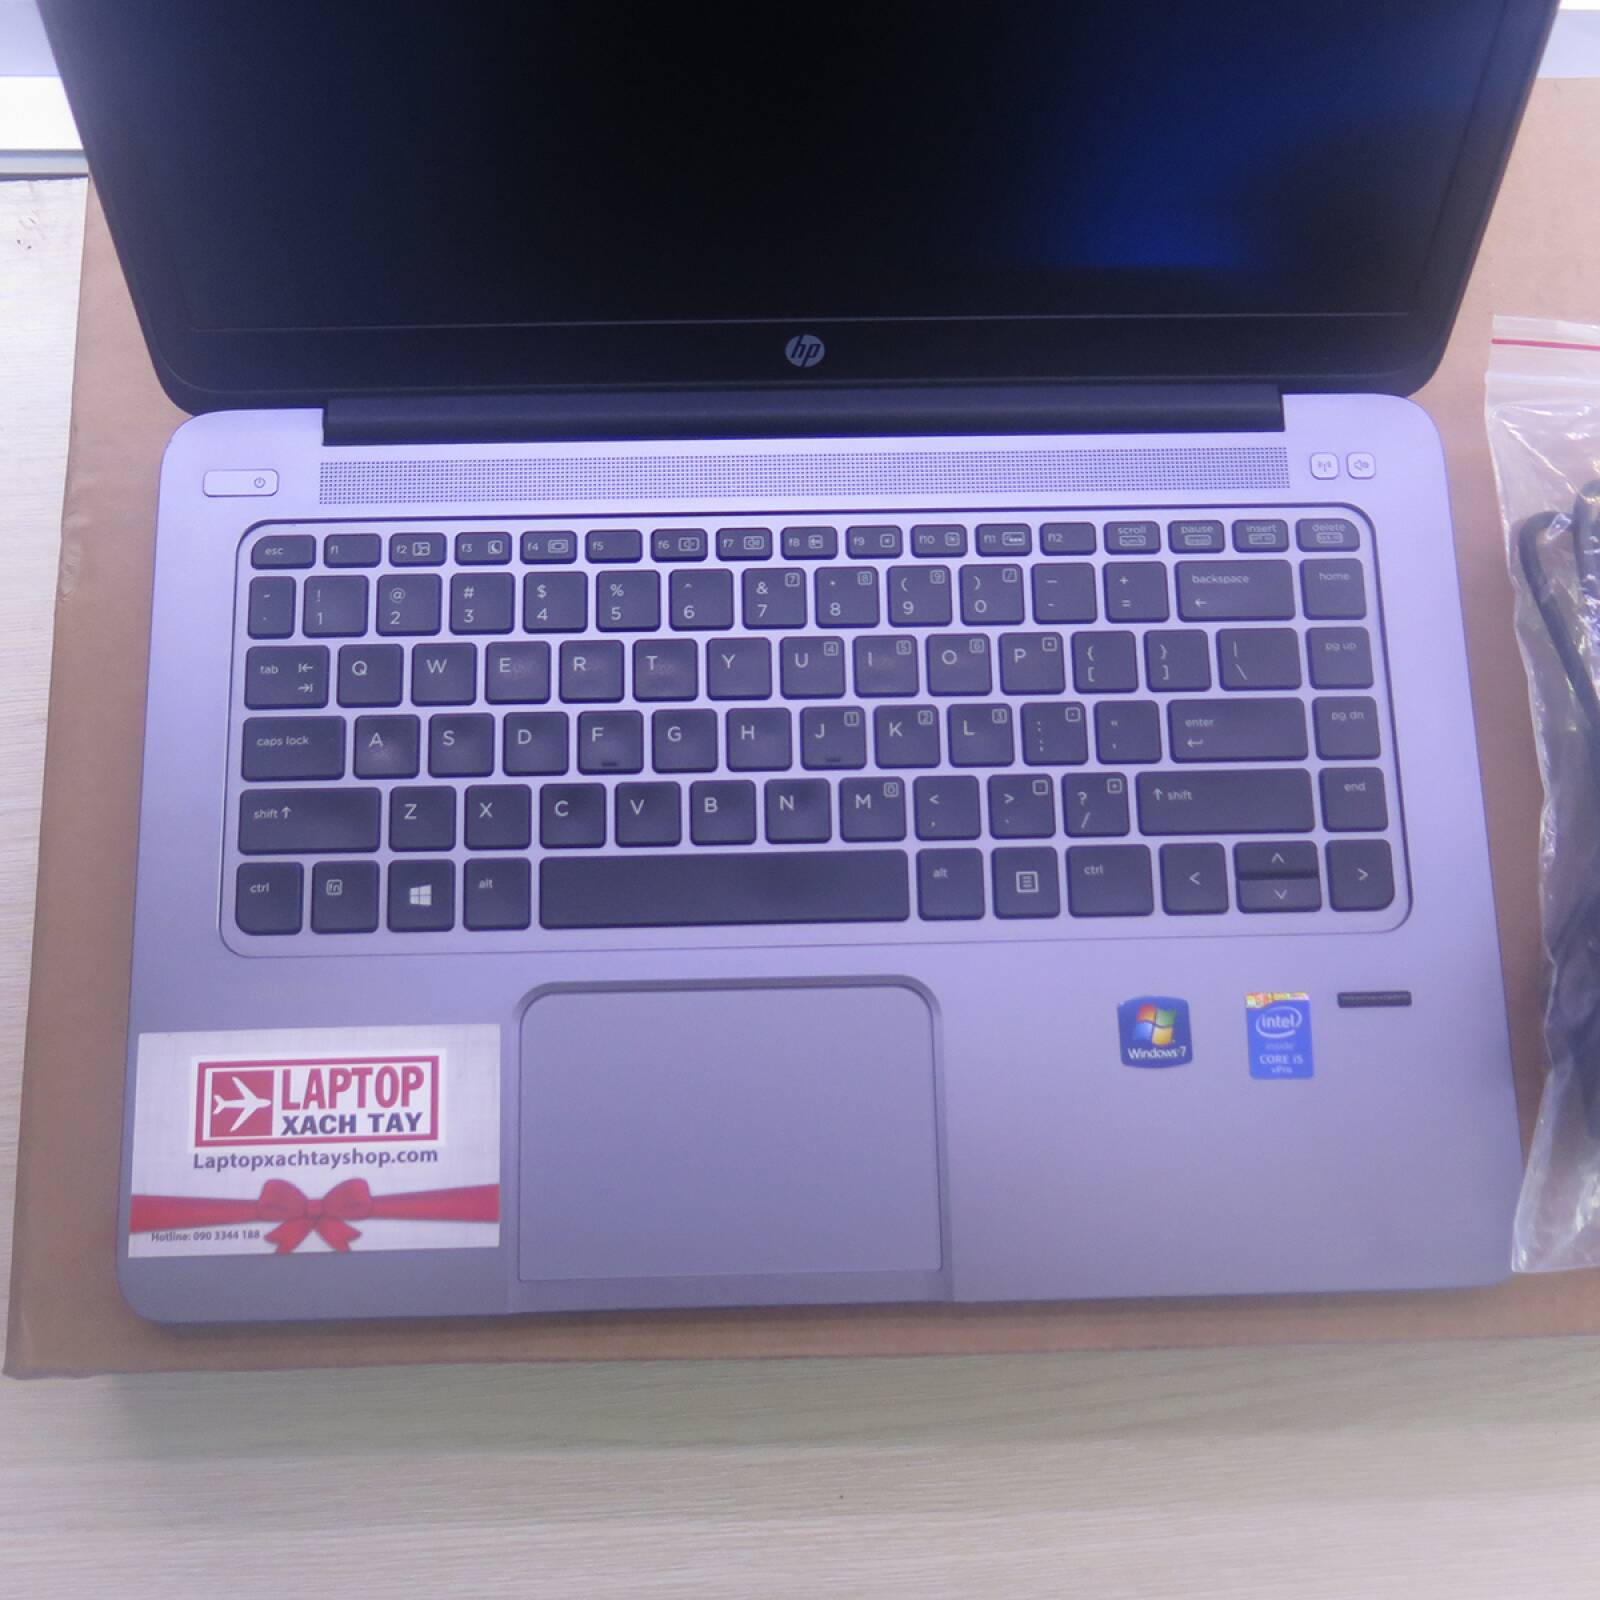 LAPTOP HP elitebook Folio 1040 tại Laptopxachtayshop.com